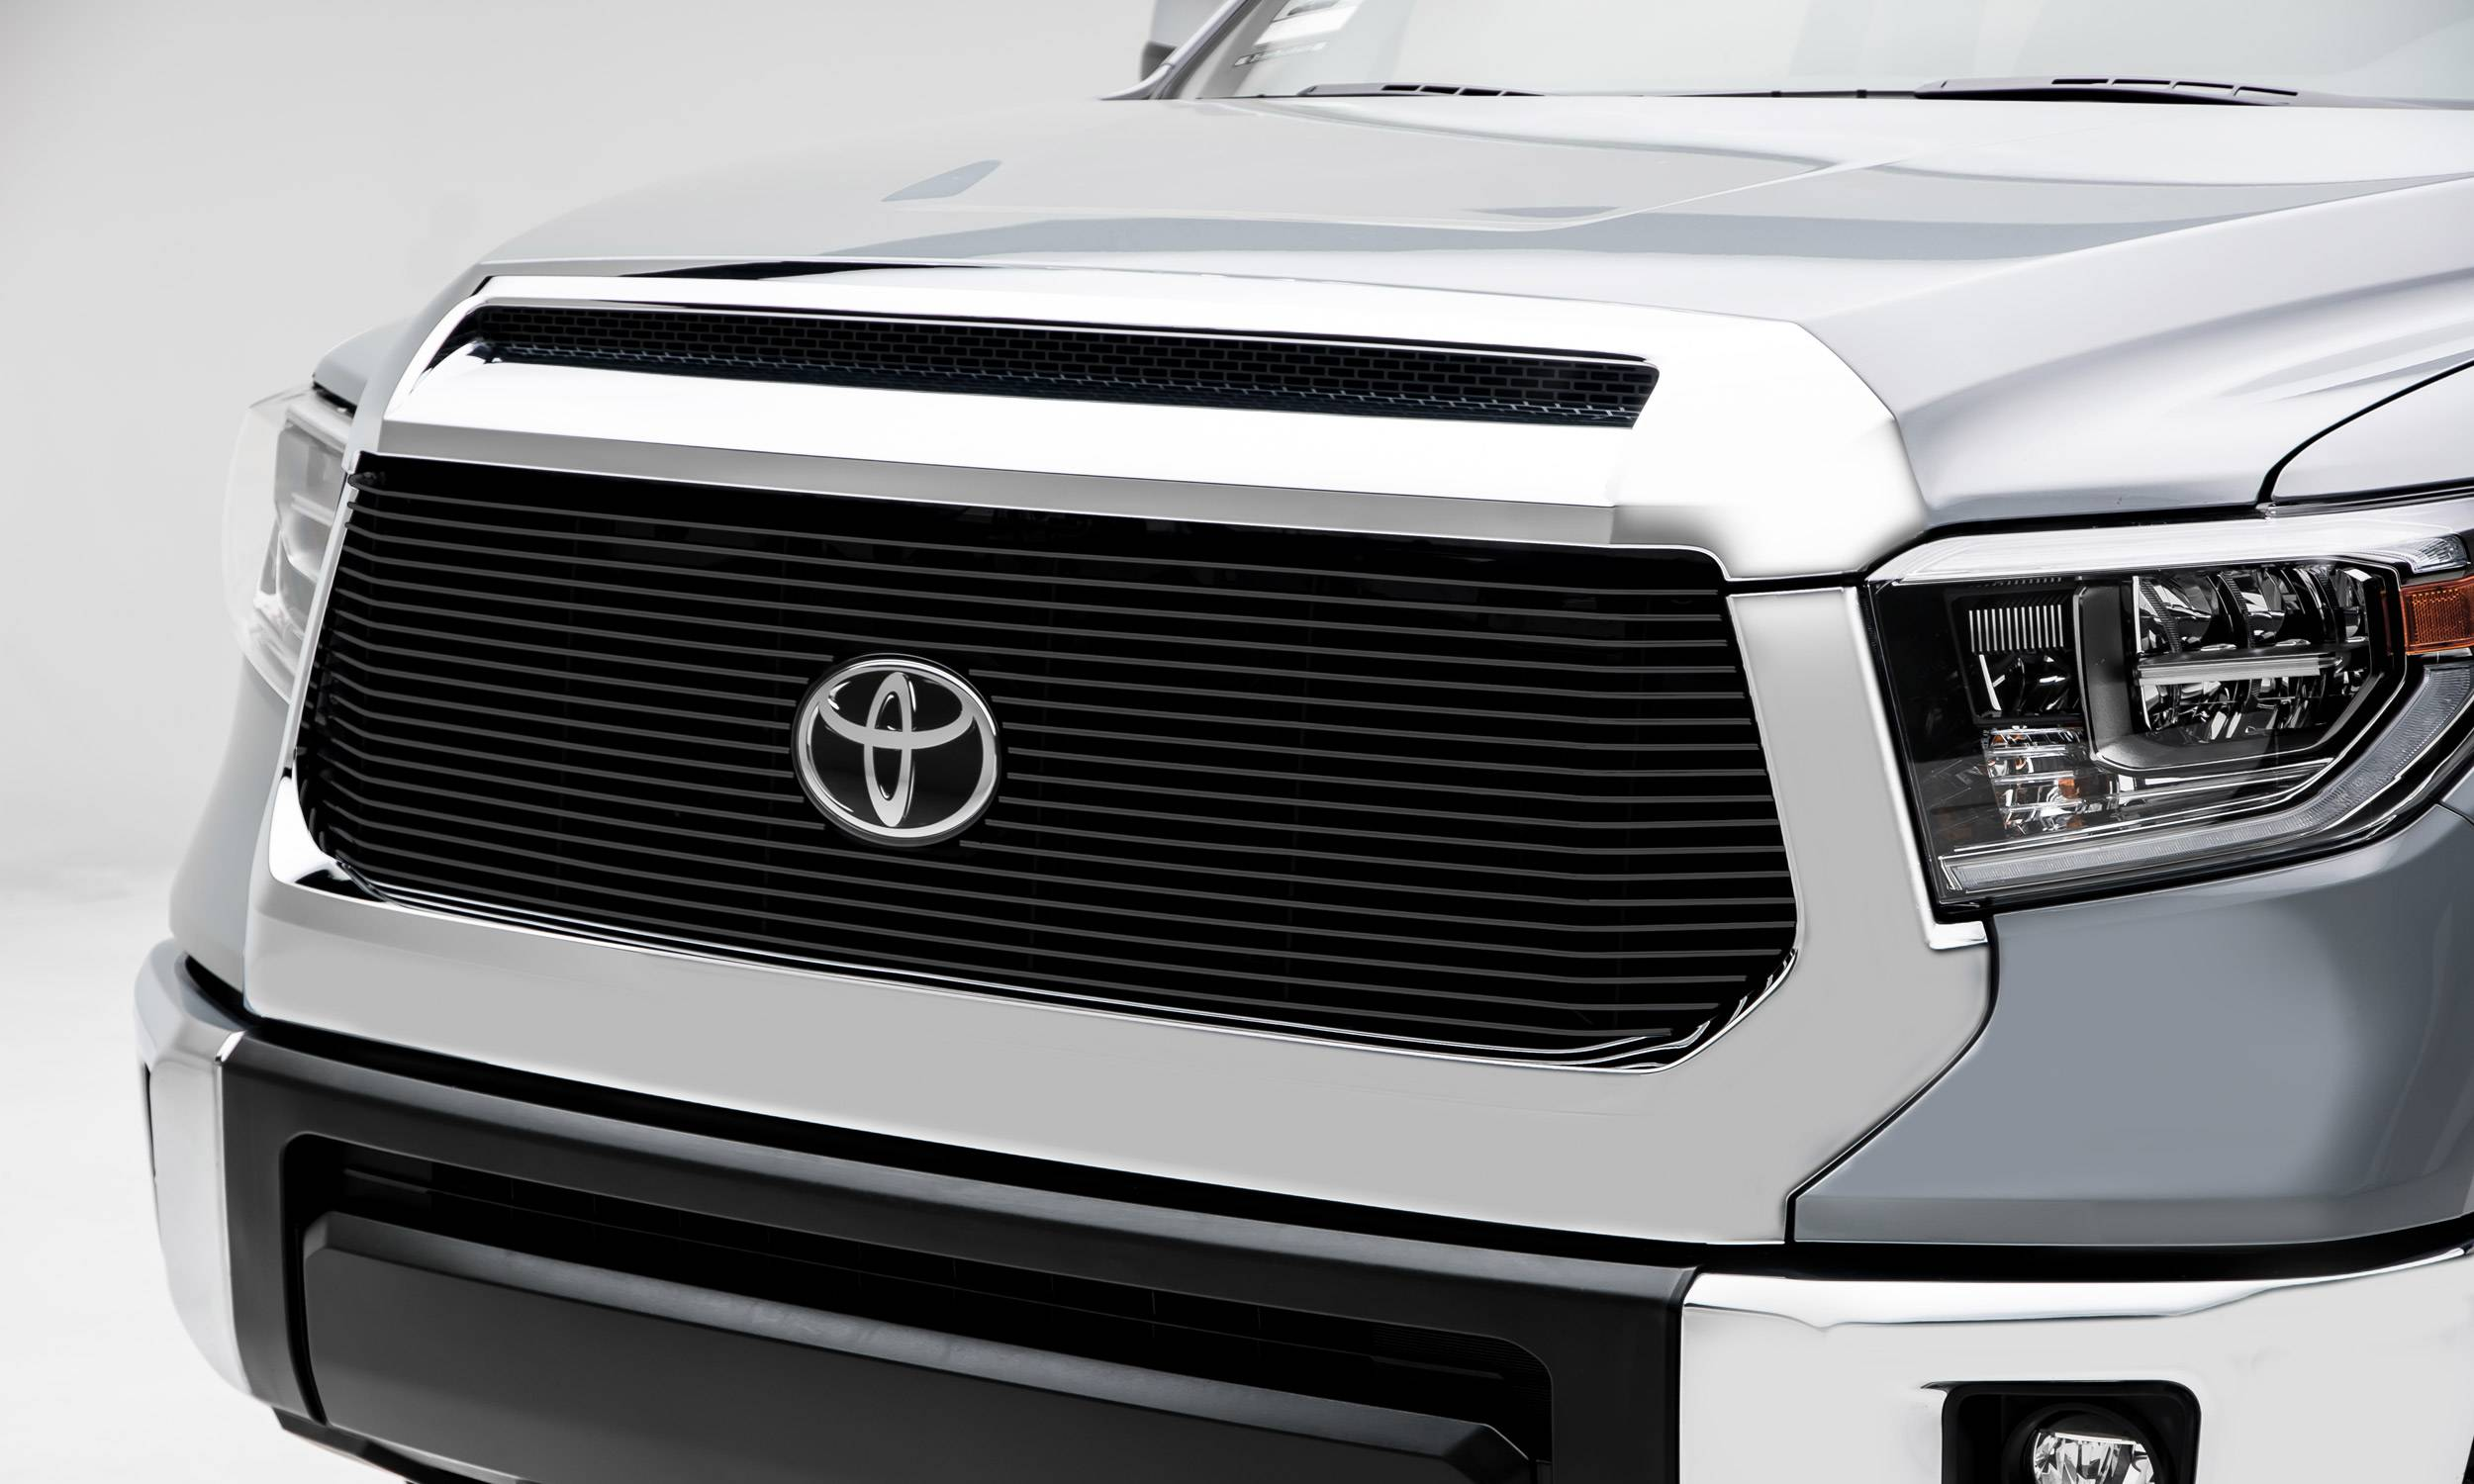 T-REX Grilles - 2018-2021 Tundra Billet Grille, Black, 1 Pc, Replacement, Does Not Fit Vehicles with Camera - PN #20966B